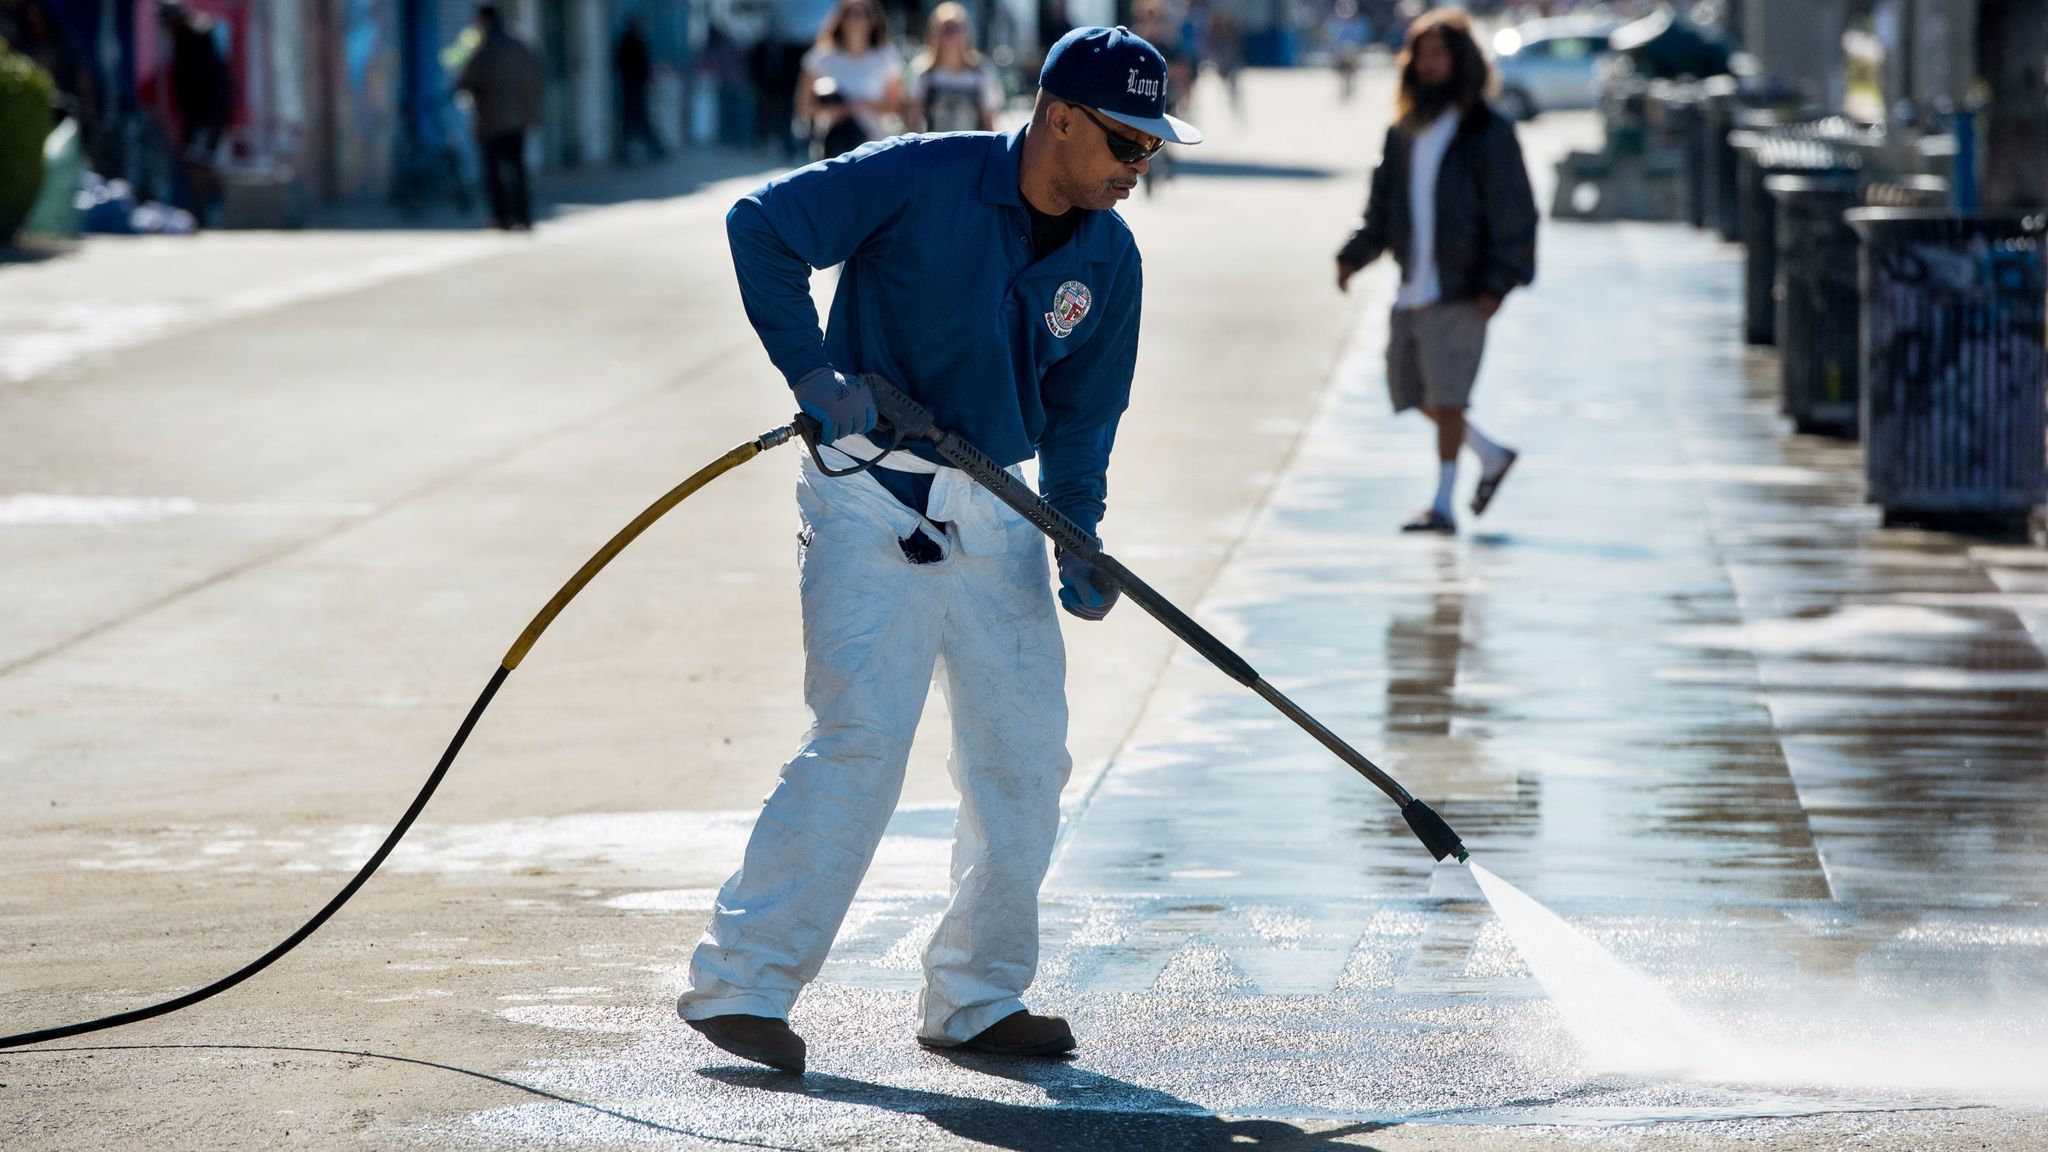 Los Angeles Department of Recreation and Parks employee Ulysses Coleman power washes the Venice Boardwalk. Job growth in Los Angeles county declined last month.